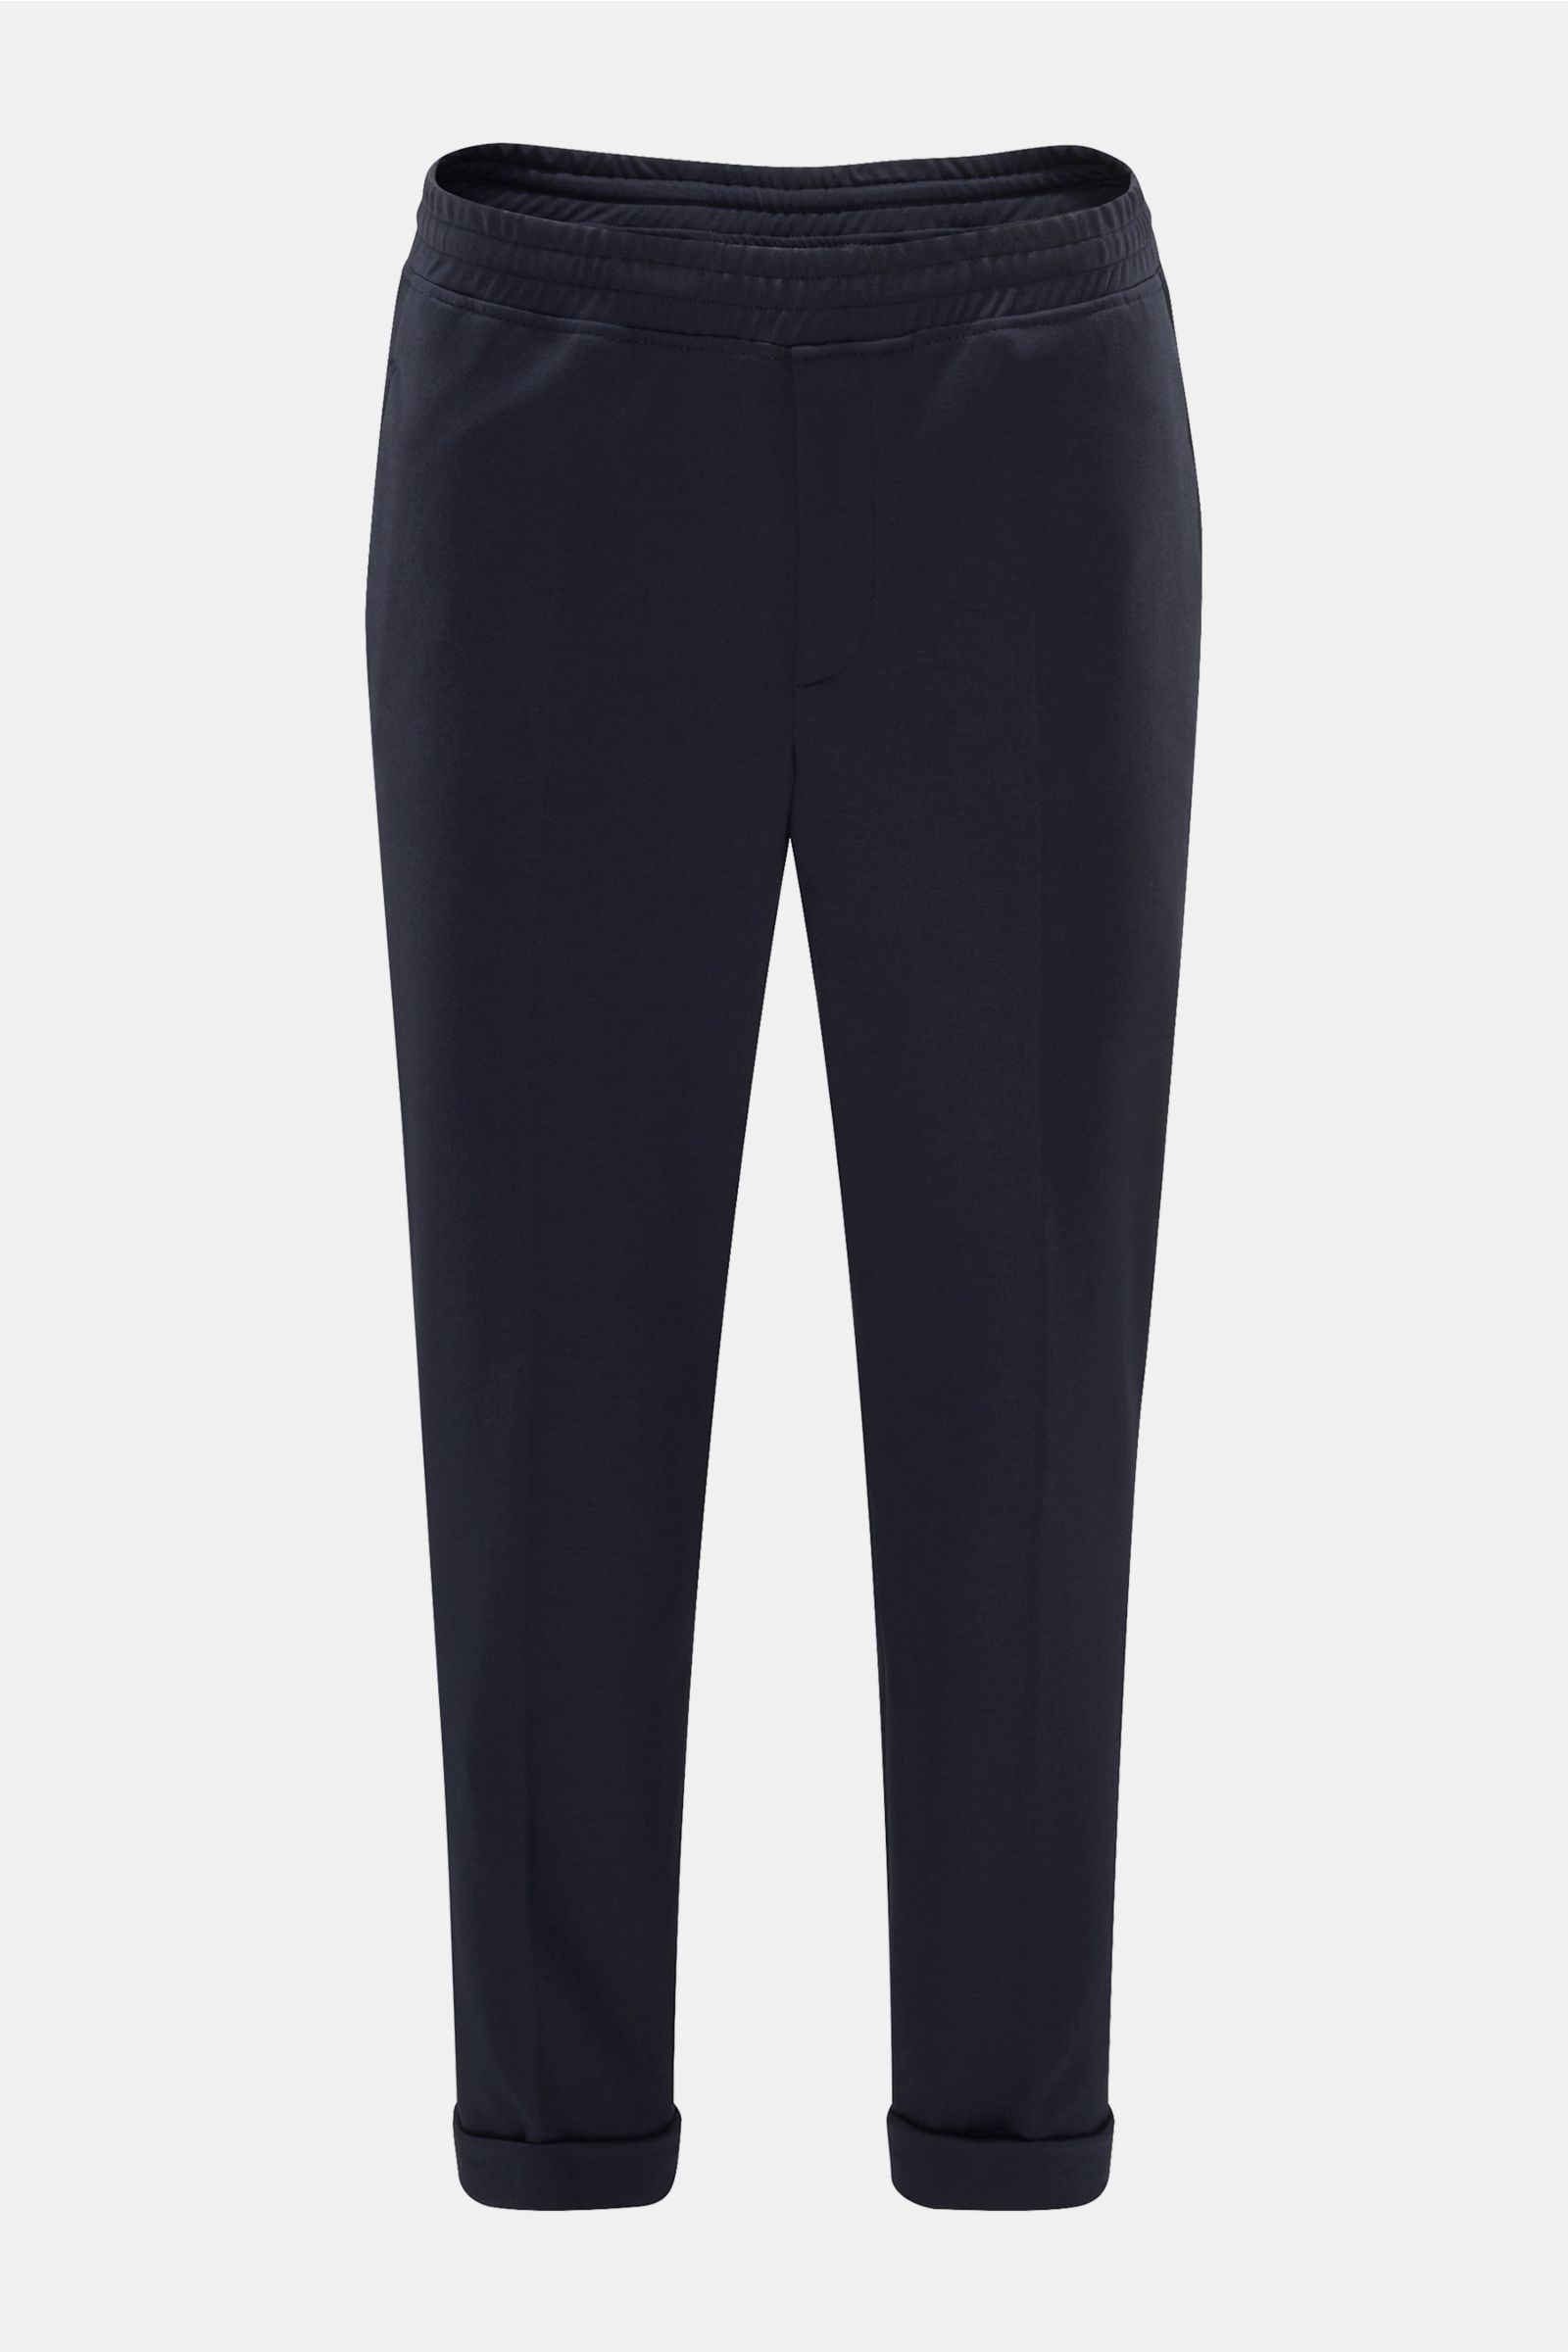 Joggpants dark navy